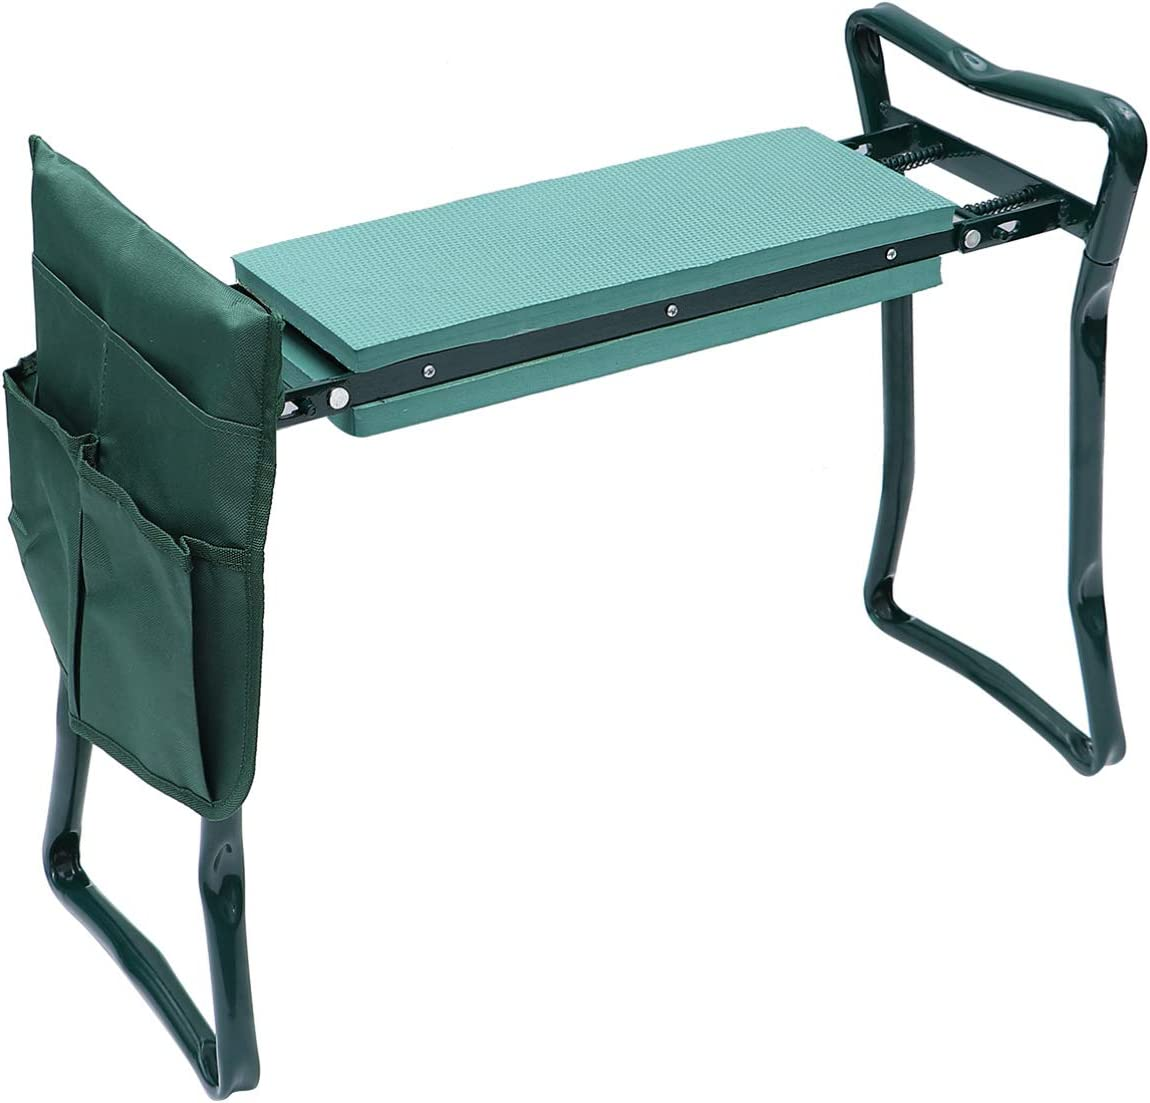 Happyyami Folding Garden Kneeler with Handles Garden Kneeler Folding Stool Metal Kneeler Stool Seat Garden Bench with Tool Pouches Easy to Carry